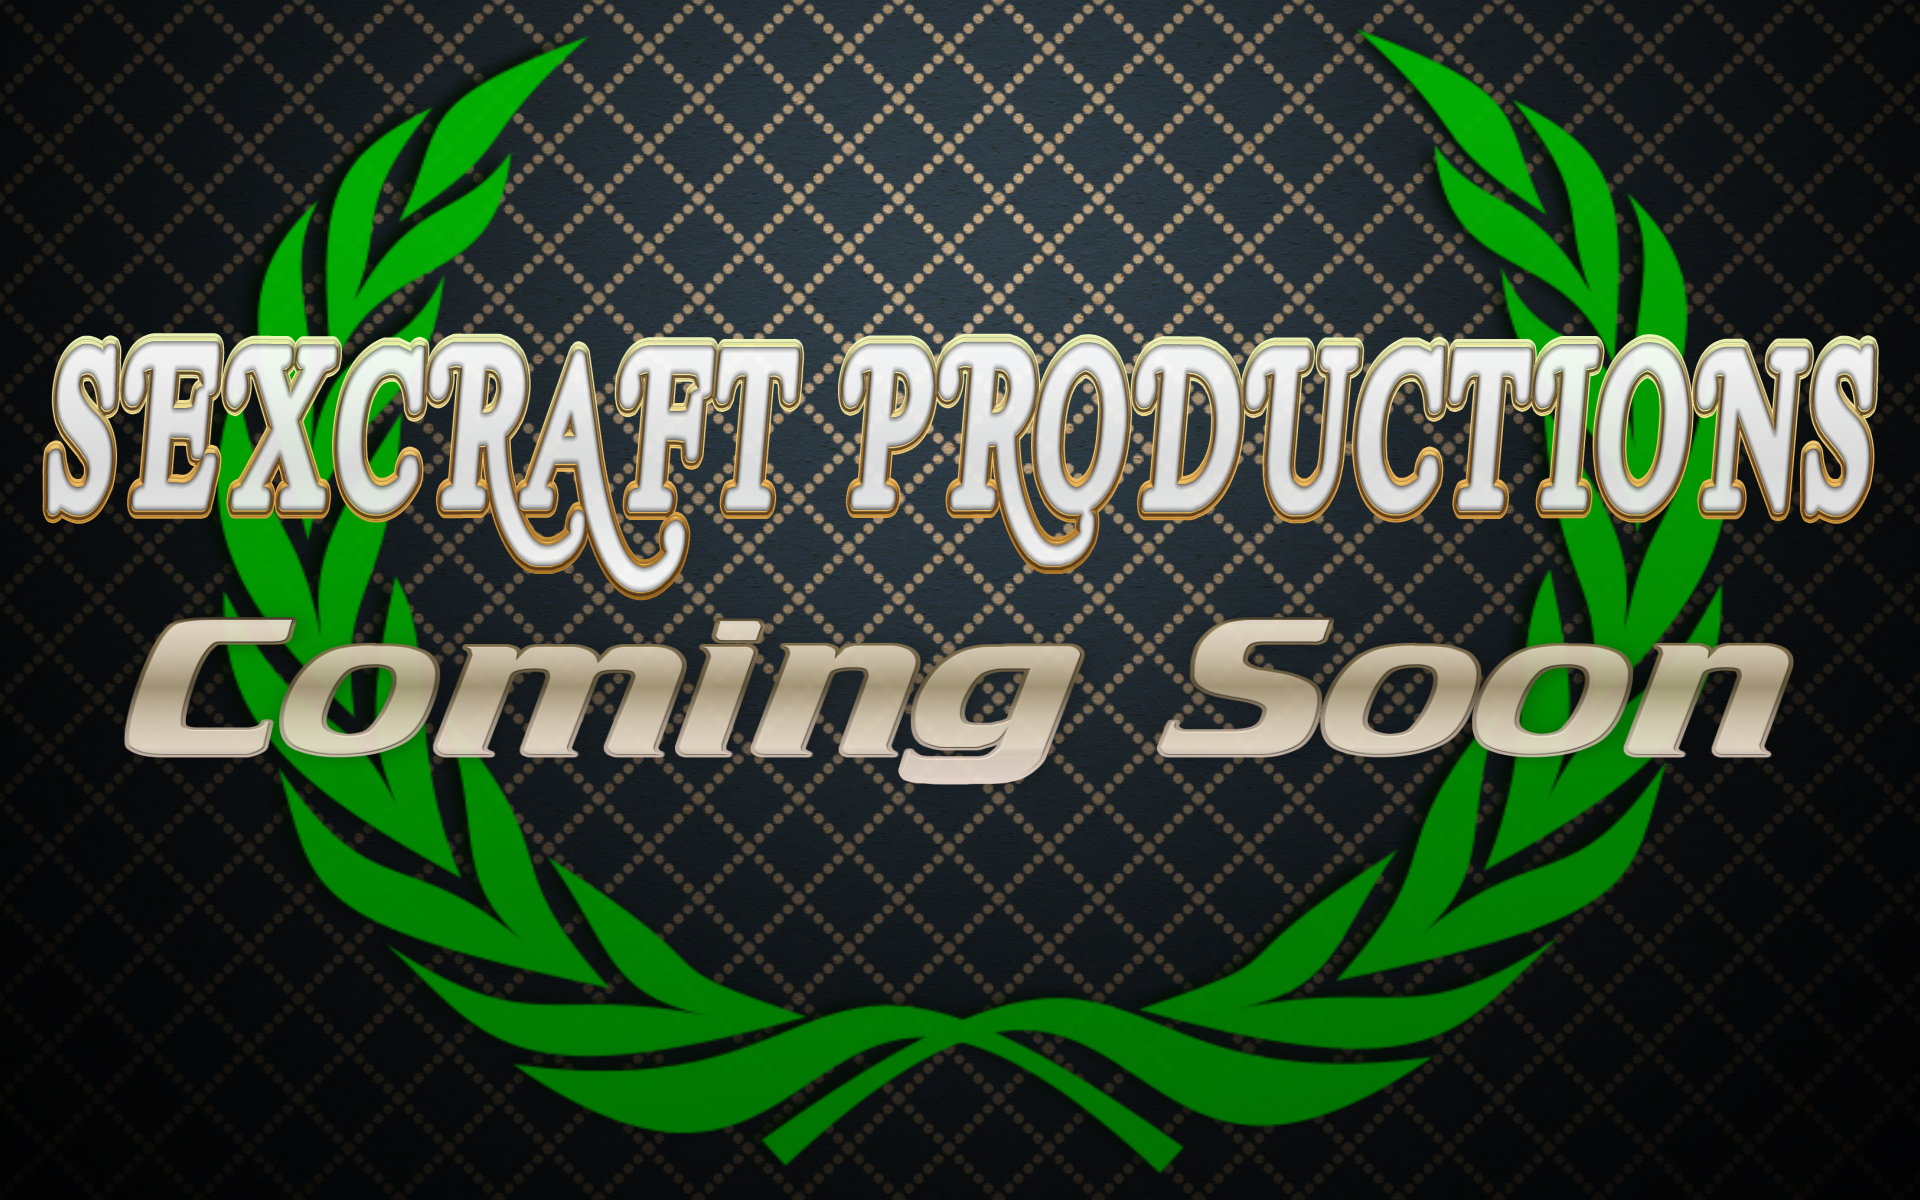 Sexcraft-Productions